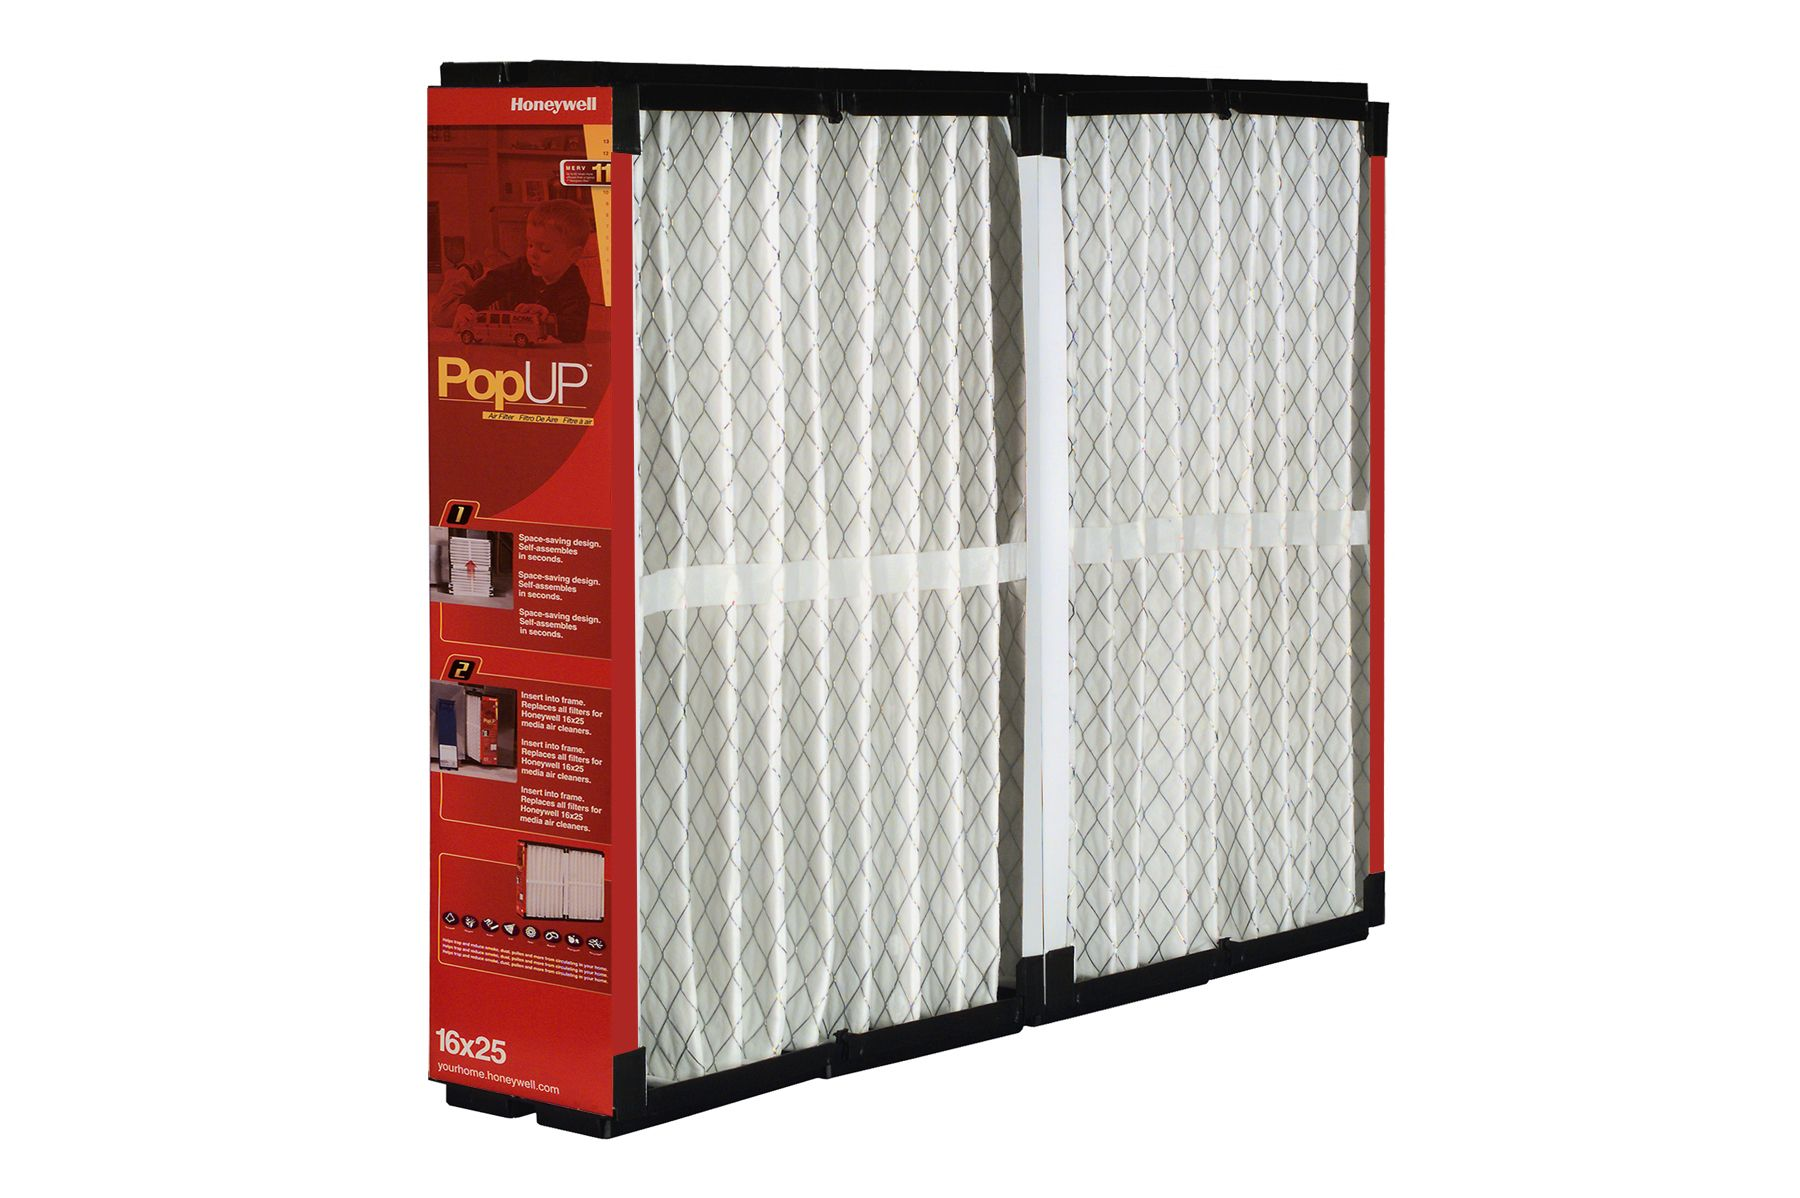 Honeywell POPUP air filters. Air filter, Filters, Pop up